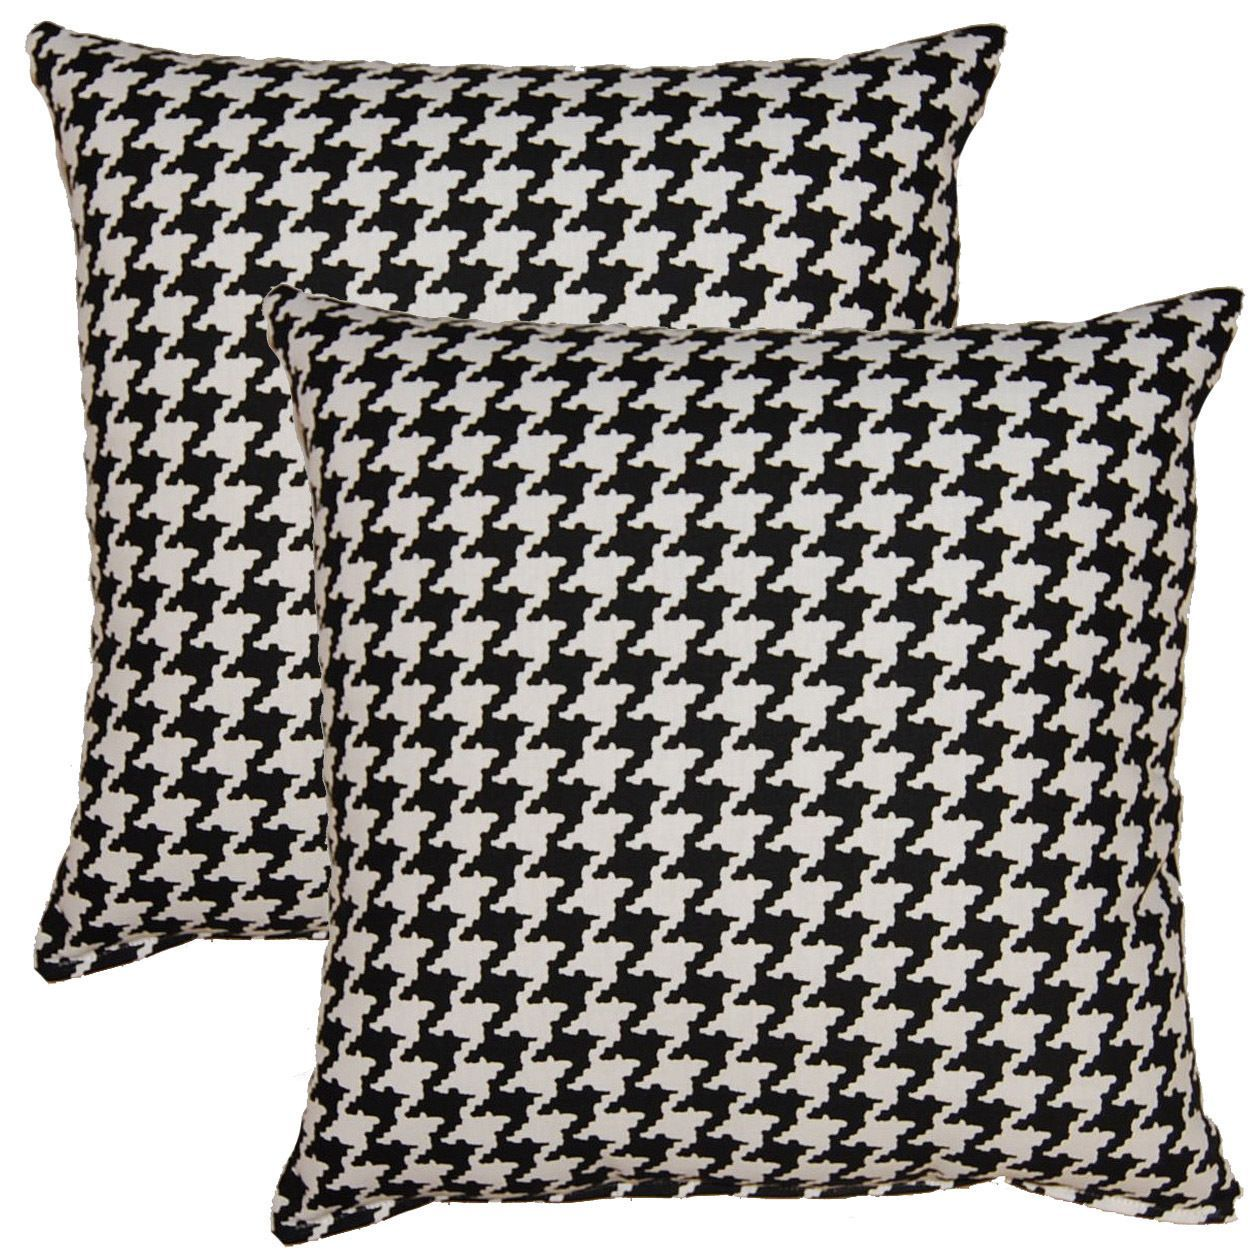 Berne Black White 17 Inch Throw Pillows Set Of 2 Throw Pillow Size 17 X 17 Polyester Check Pillow Set Throw Pillow Sets